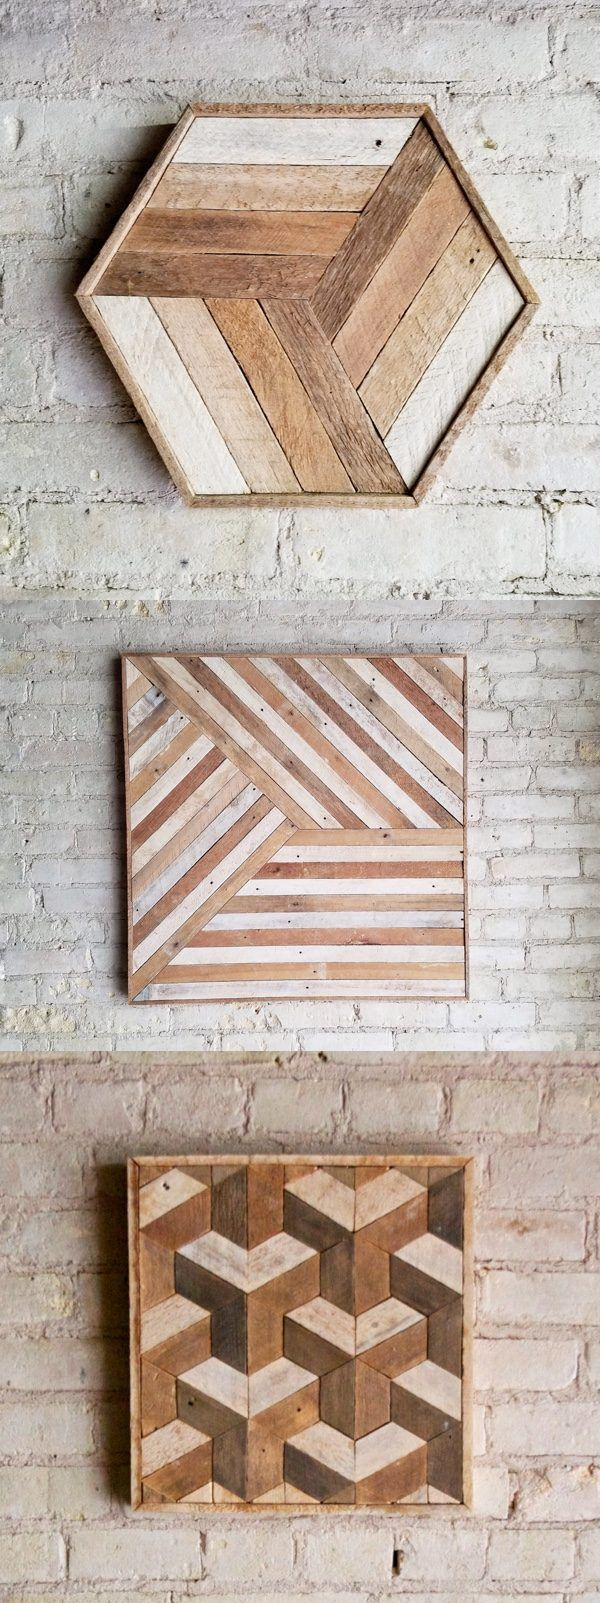 Inject Warmth Into Your Home With Reclaimed Wood Wall: Best 25+ Wood Wall Art Ideas On Pinterest